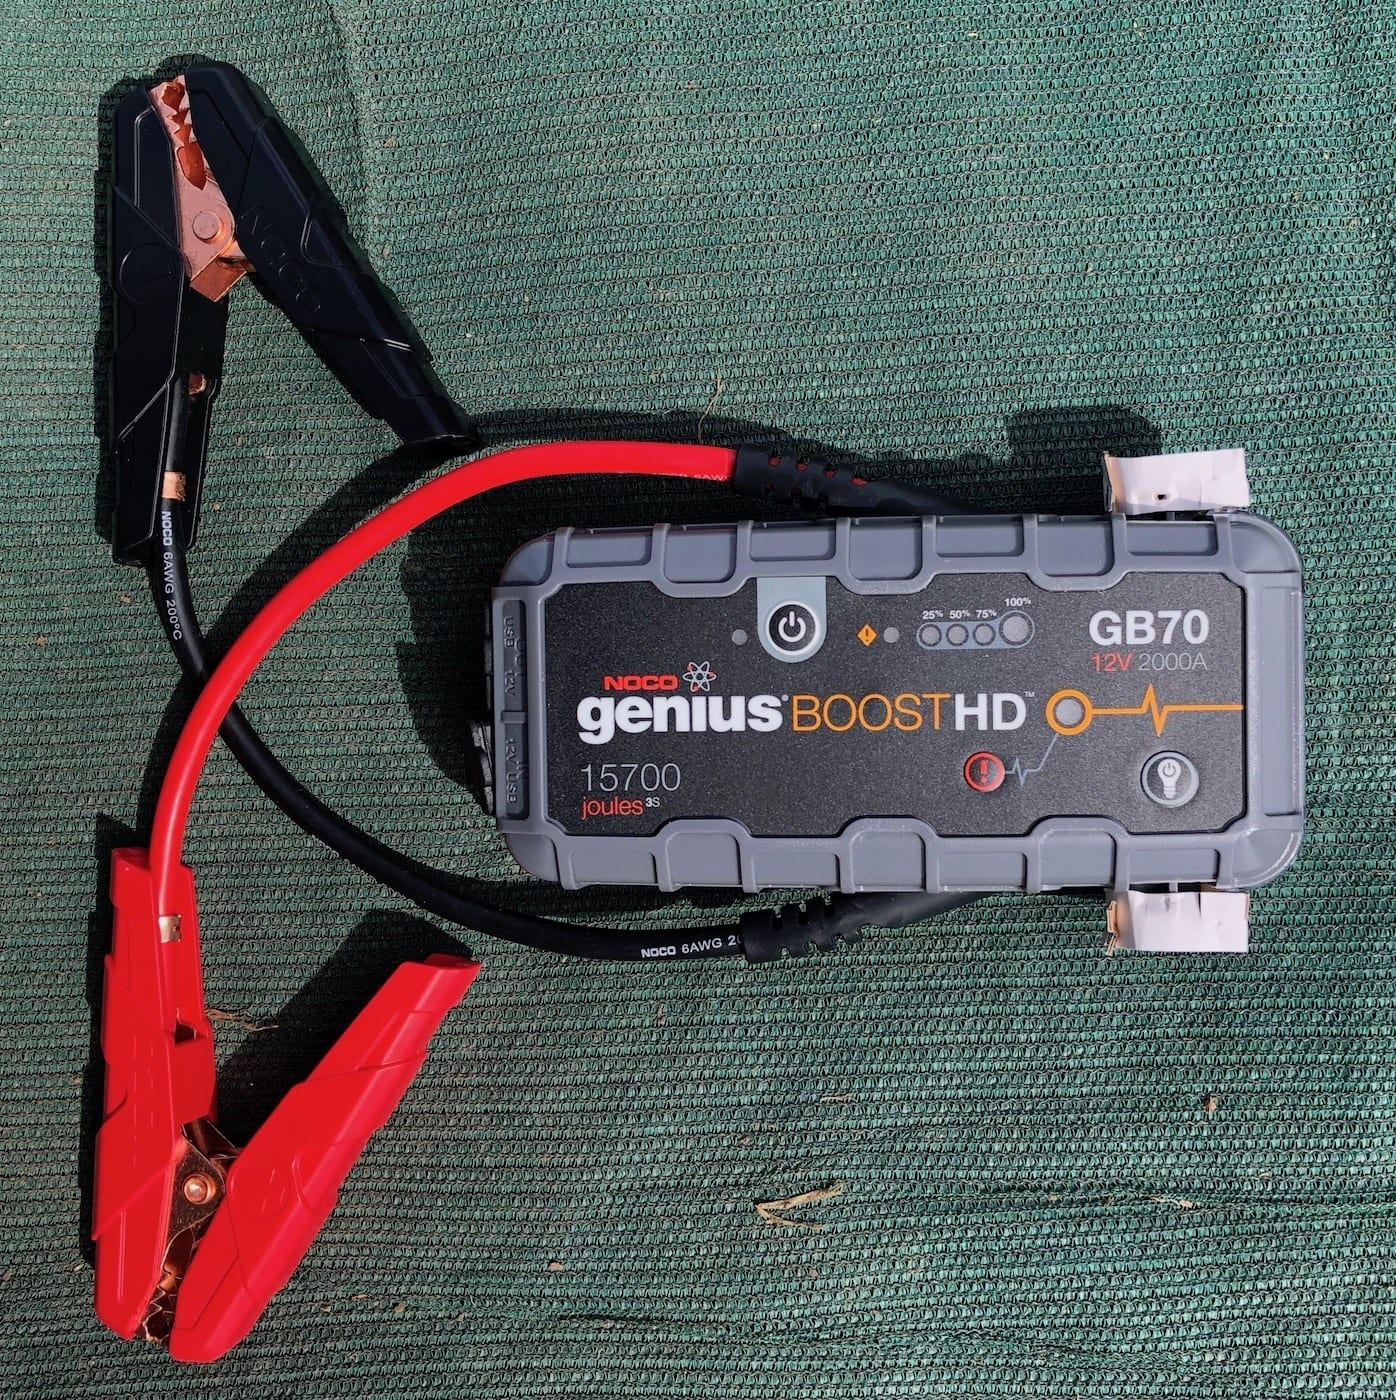 NOCO Genius Boost GB70 portable jump starter showing jaw clamps.